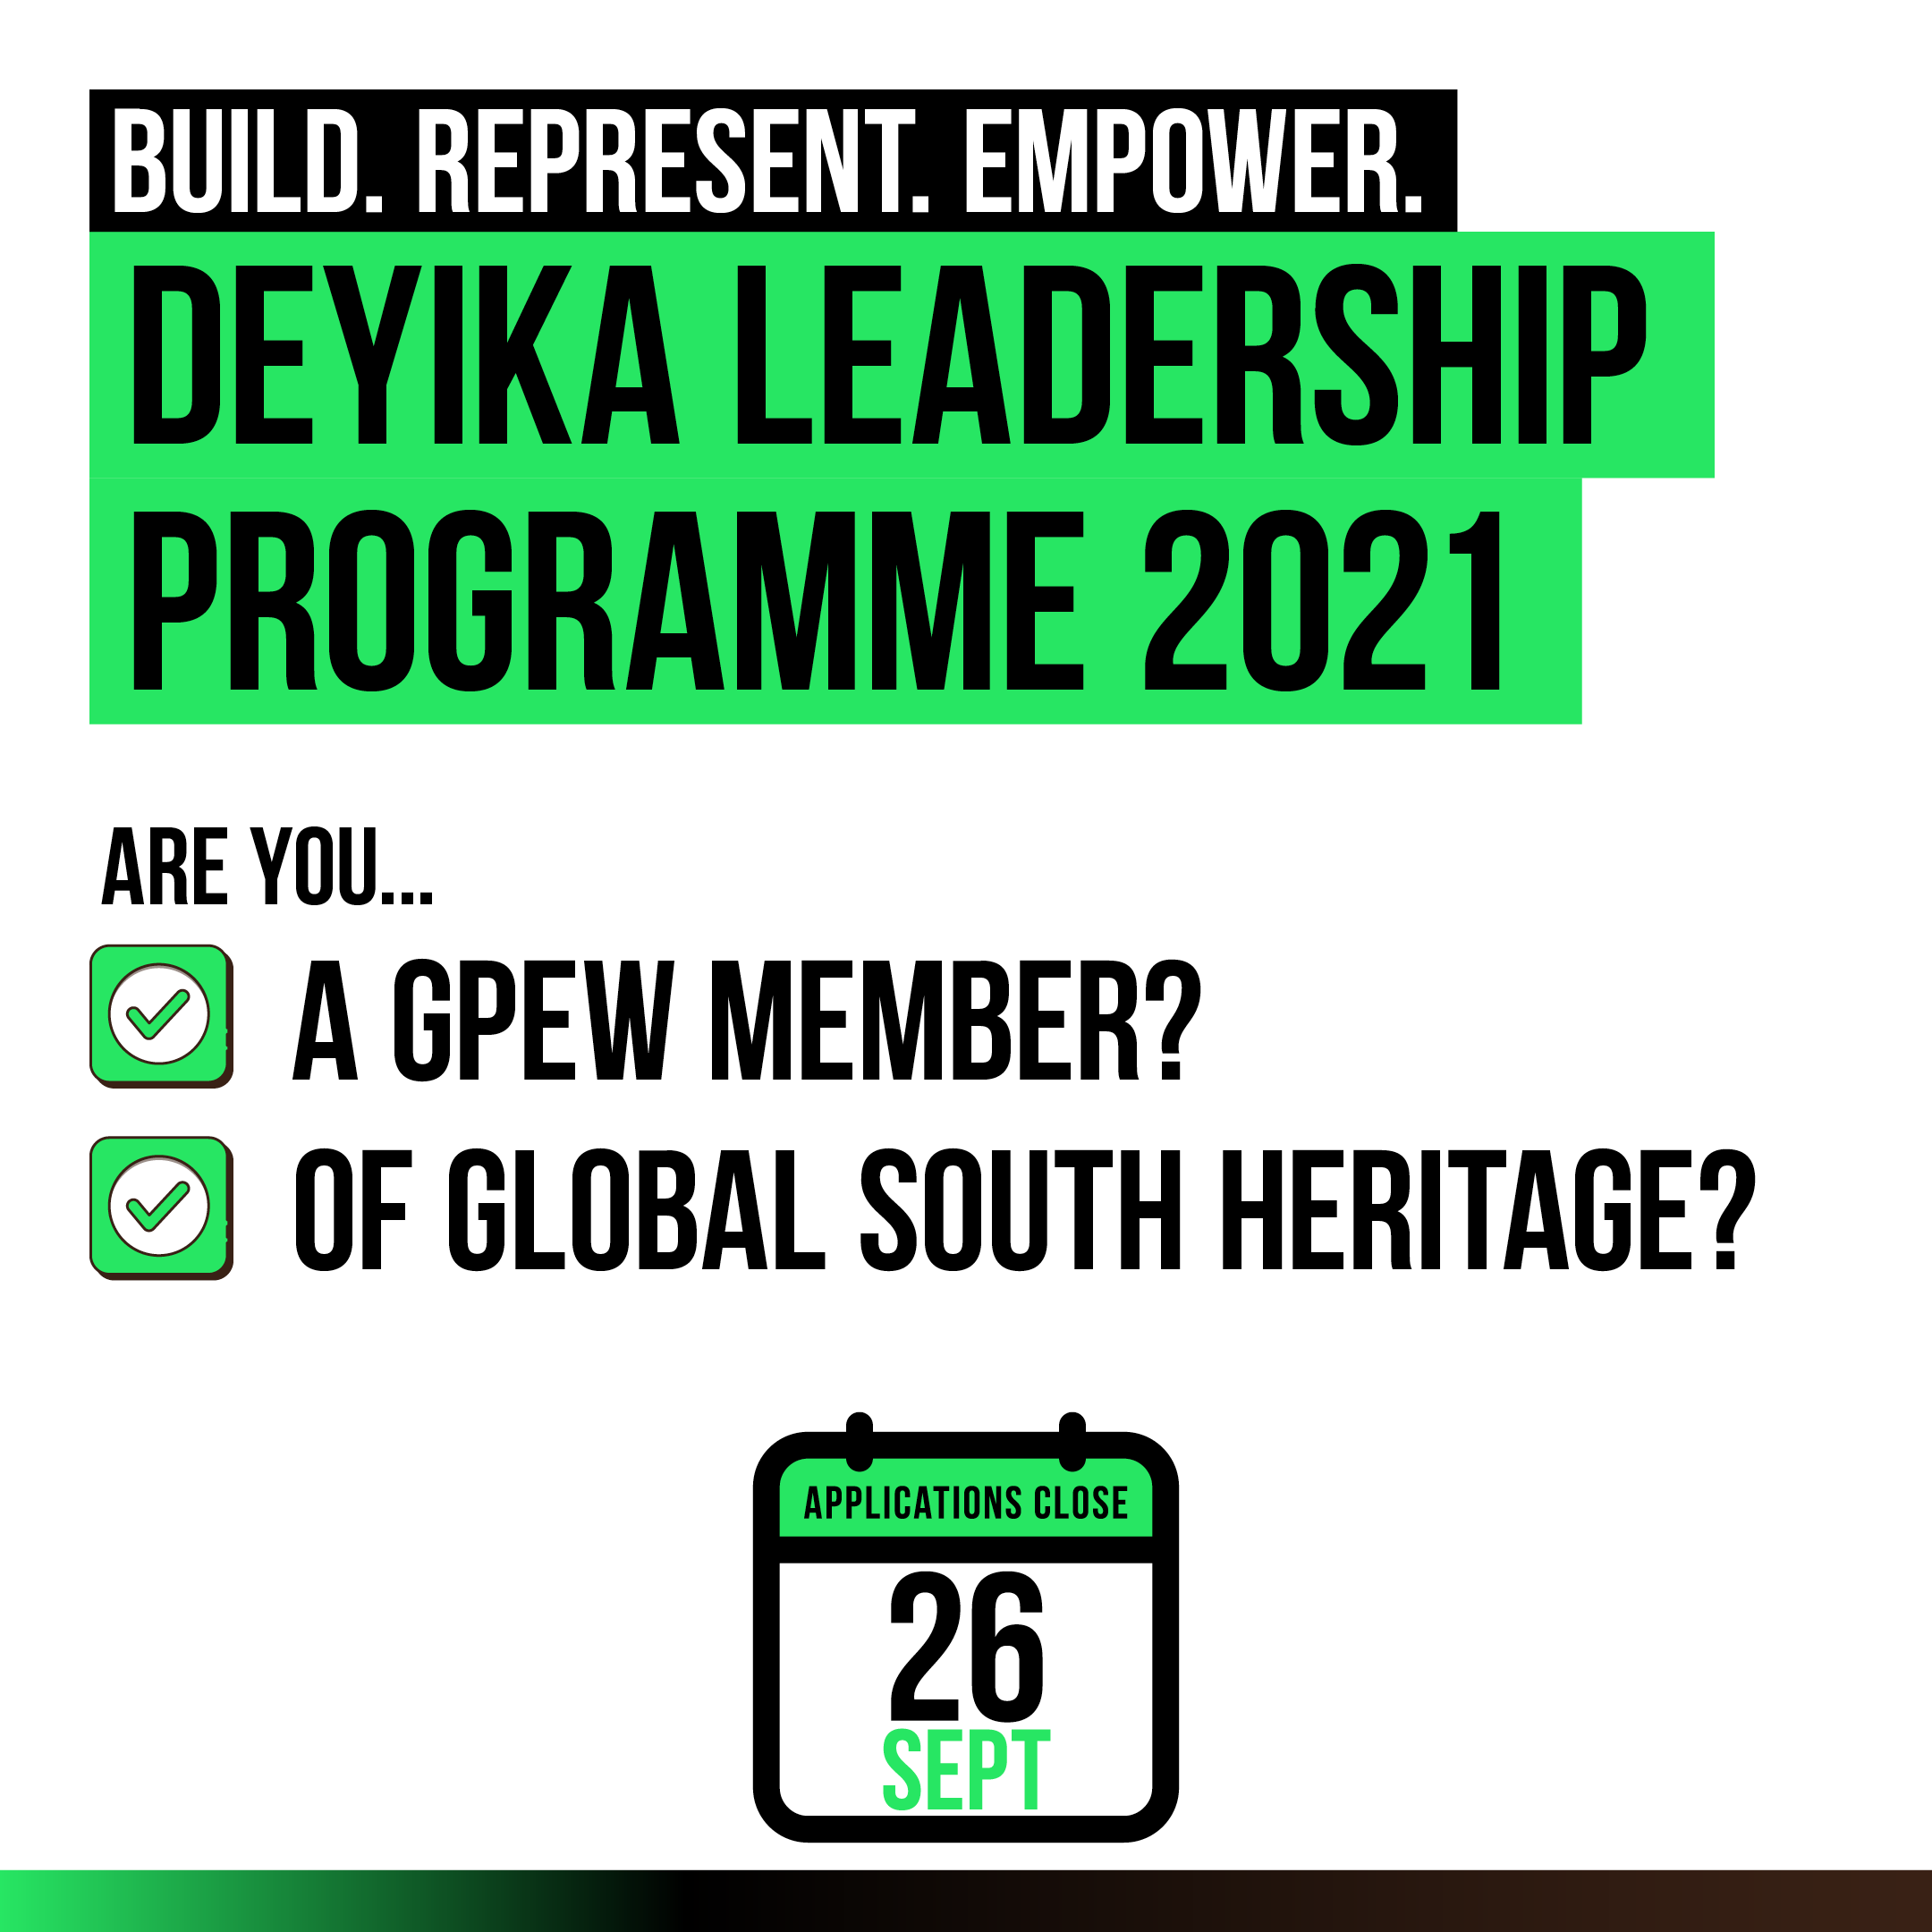 BUILD. REPRESENT. EMPOWER. DEYIKA LEADERSHIP PROGRAMME 2021 ARE YOU... A GPEW MEMBER? OF GLOBAL SOUTH HERITAGE? APPLICATIONS CLOSE 26 SEPT